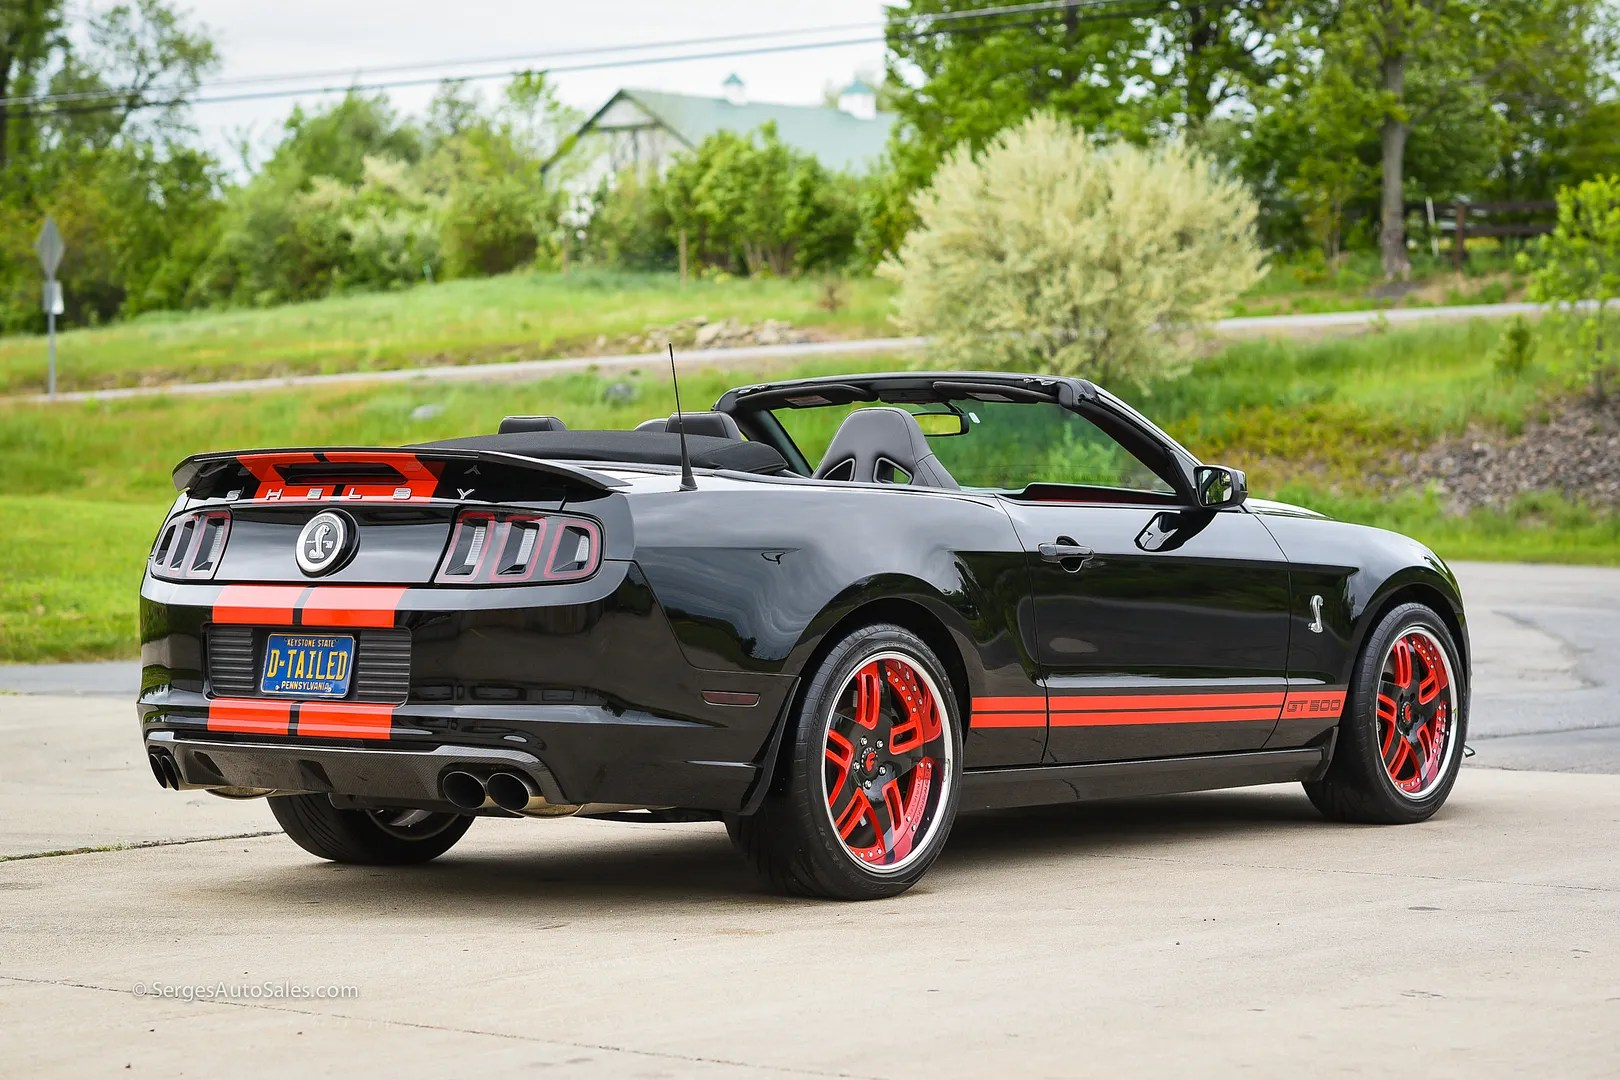 photo Serges-Auto-Sales-shelby-mustang-gt-for-sale-convertible-gt500-scranton-pa-48_zpsooh5pnga.jpg